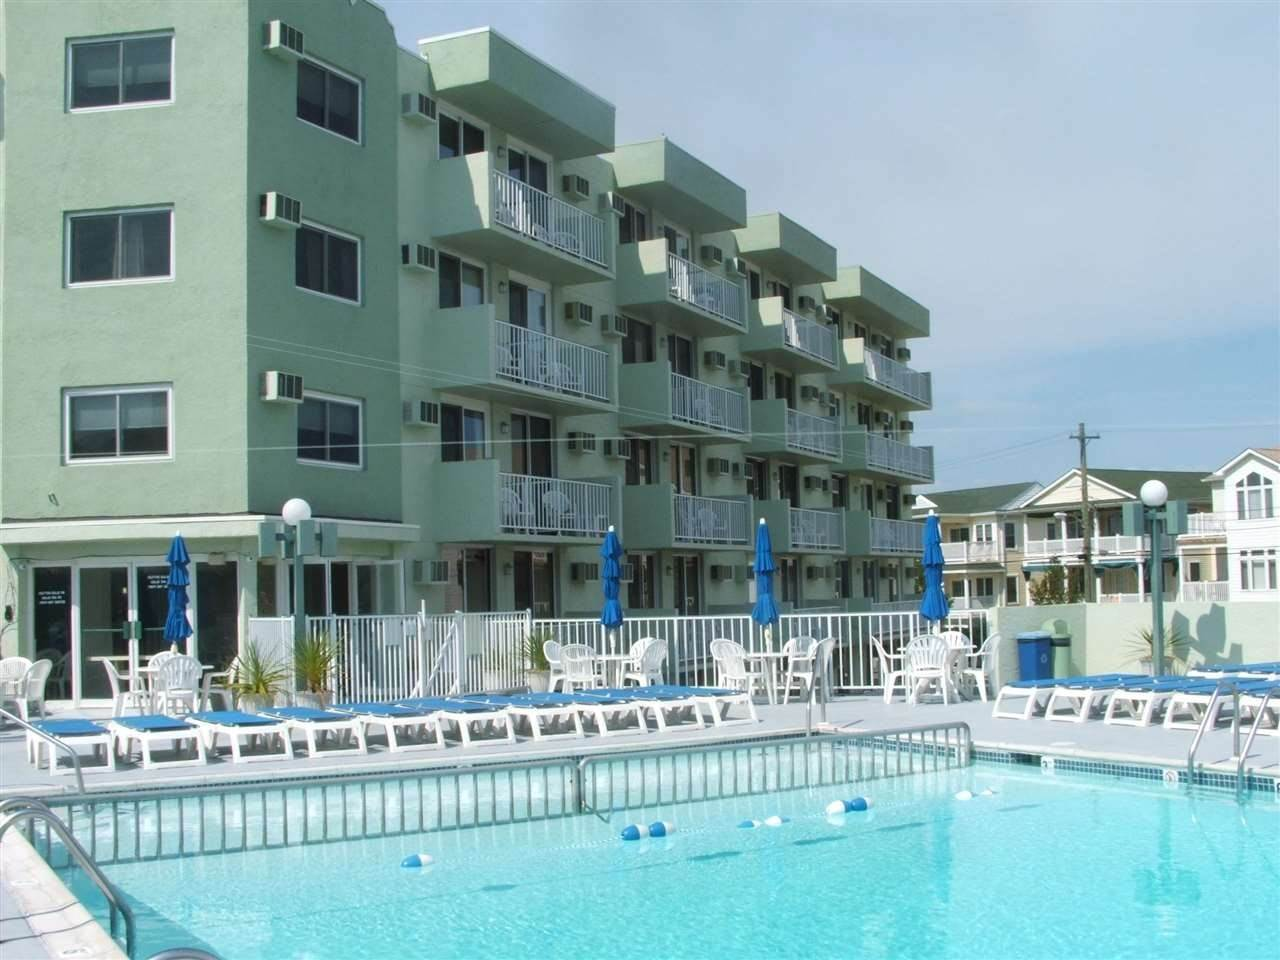 Condominiums for Sale at 225 E Wildwood Avenue Wildwood, New Jersey 08260 United States